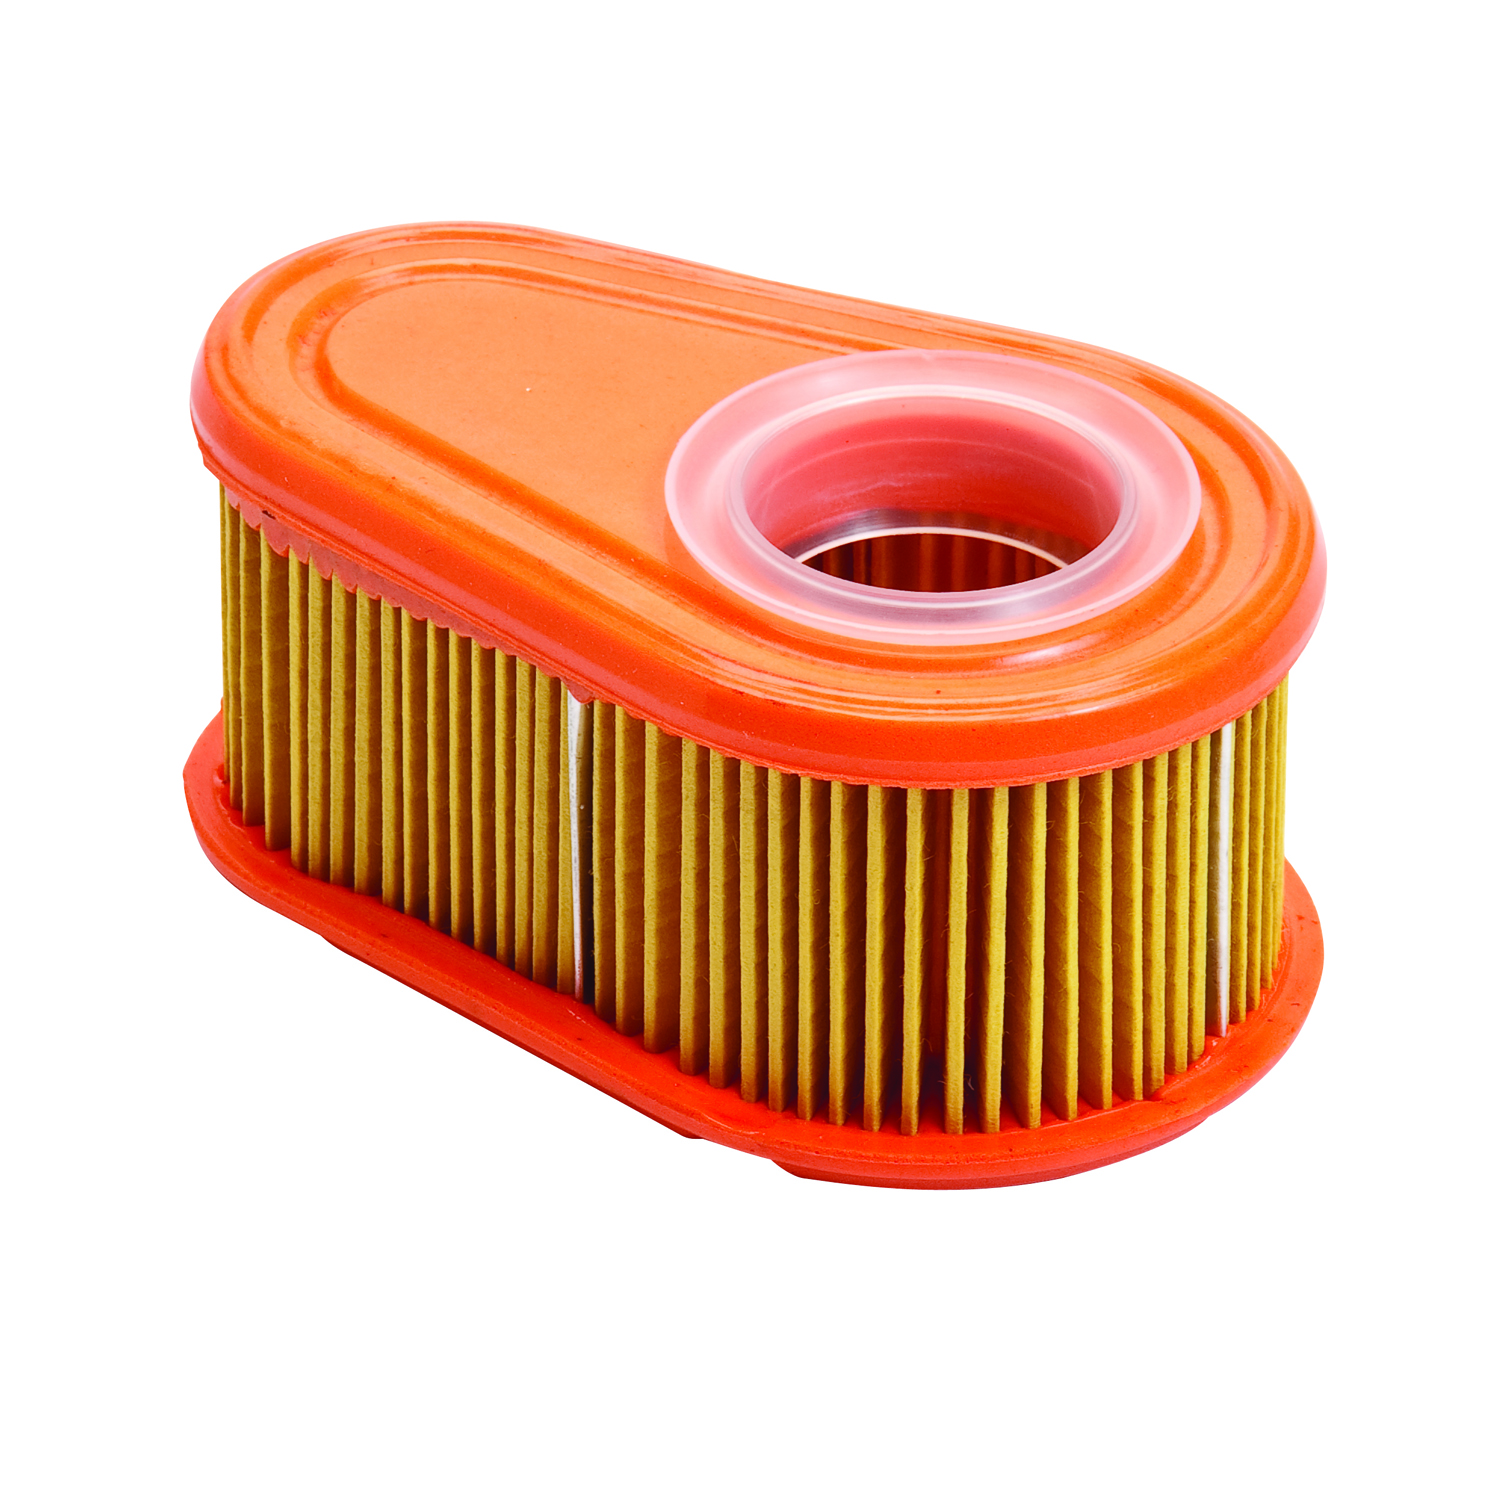 Air Filter For Briggs And Stratton Paper Filter 792038